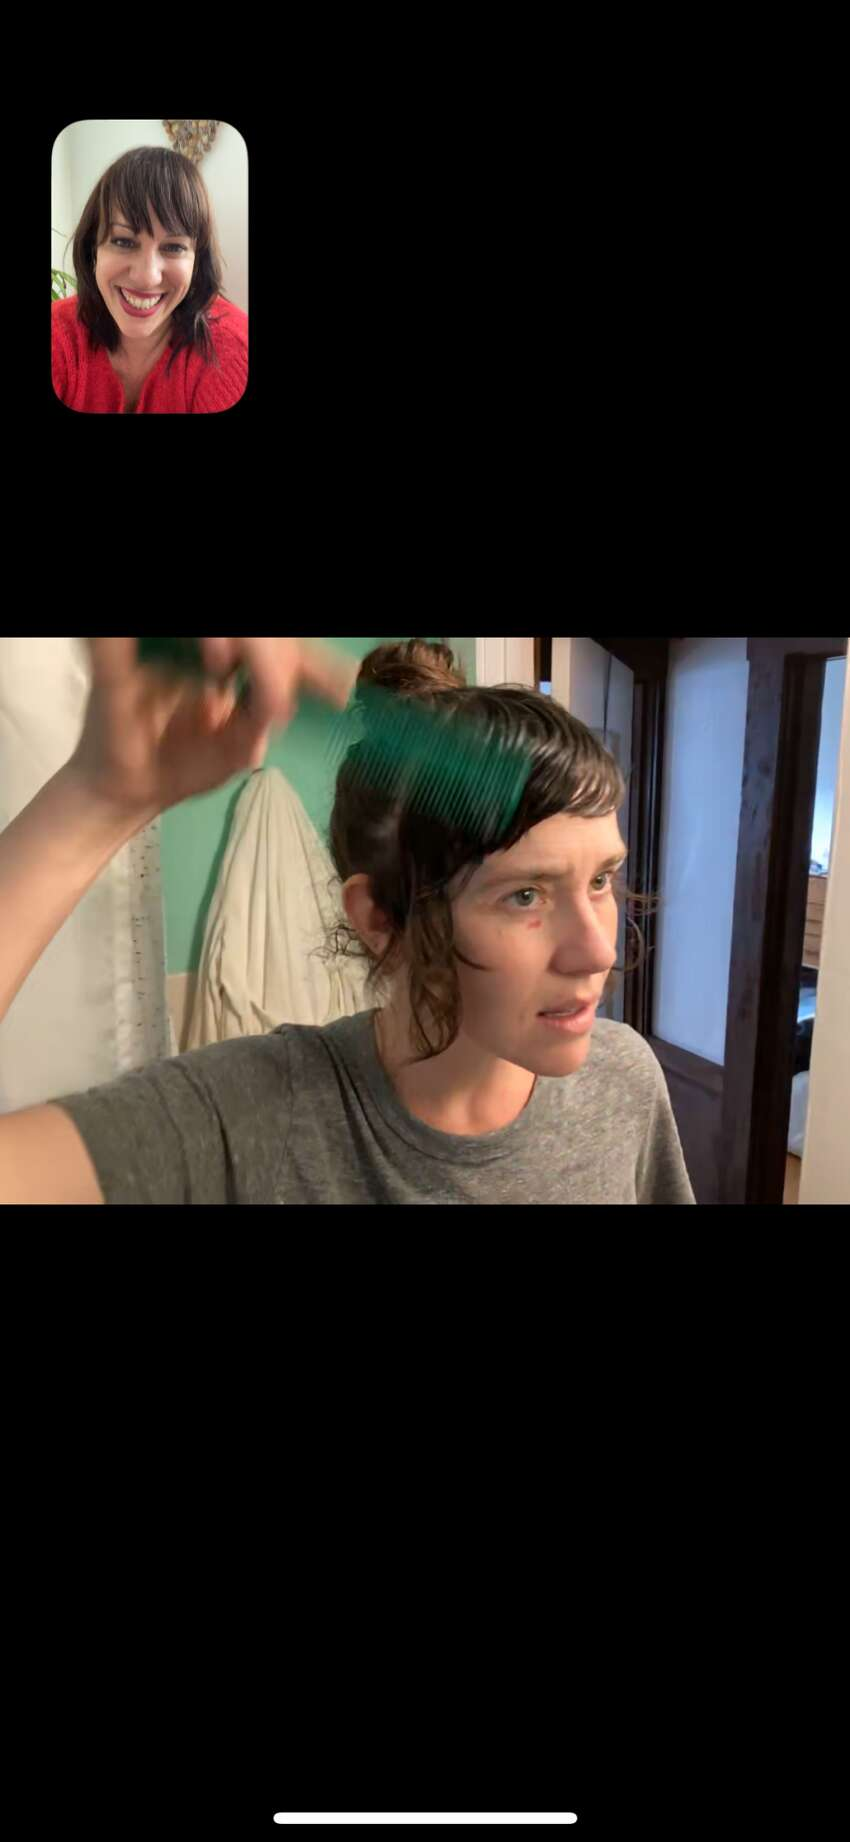 Edo Salon co-owner and stylist Chri Longstreet guides one of her clients through a virtual hair appointment - an alternative many are turning to as they shelter in place.